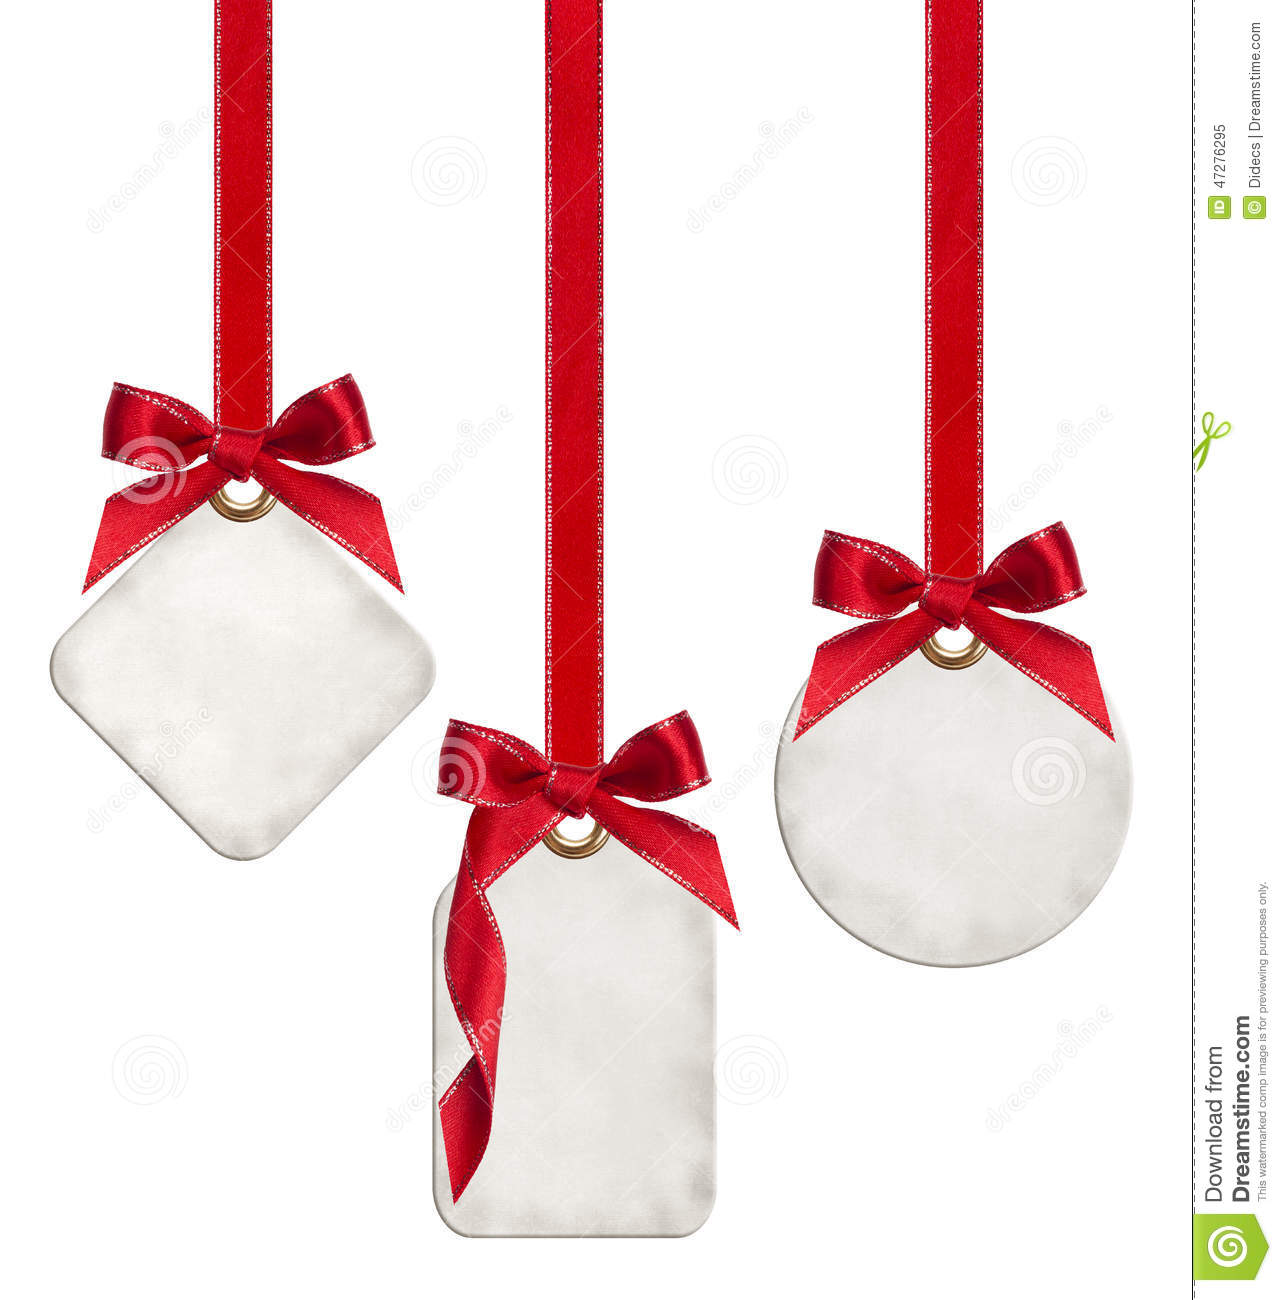 collection of blank gift tags tied with red satin ribbon